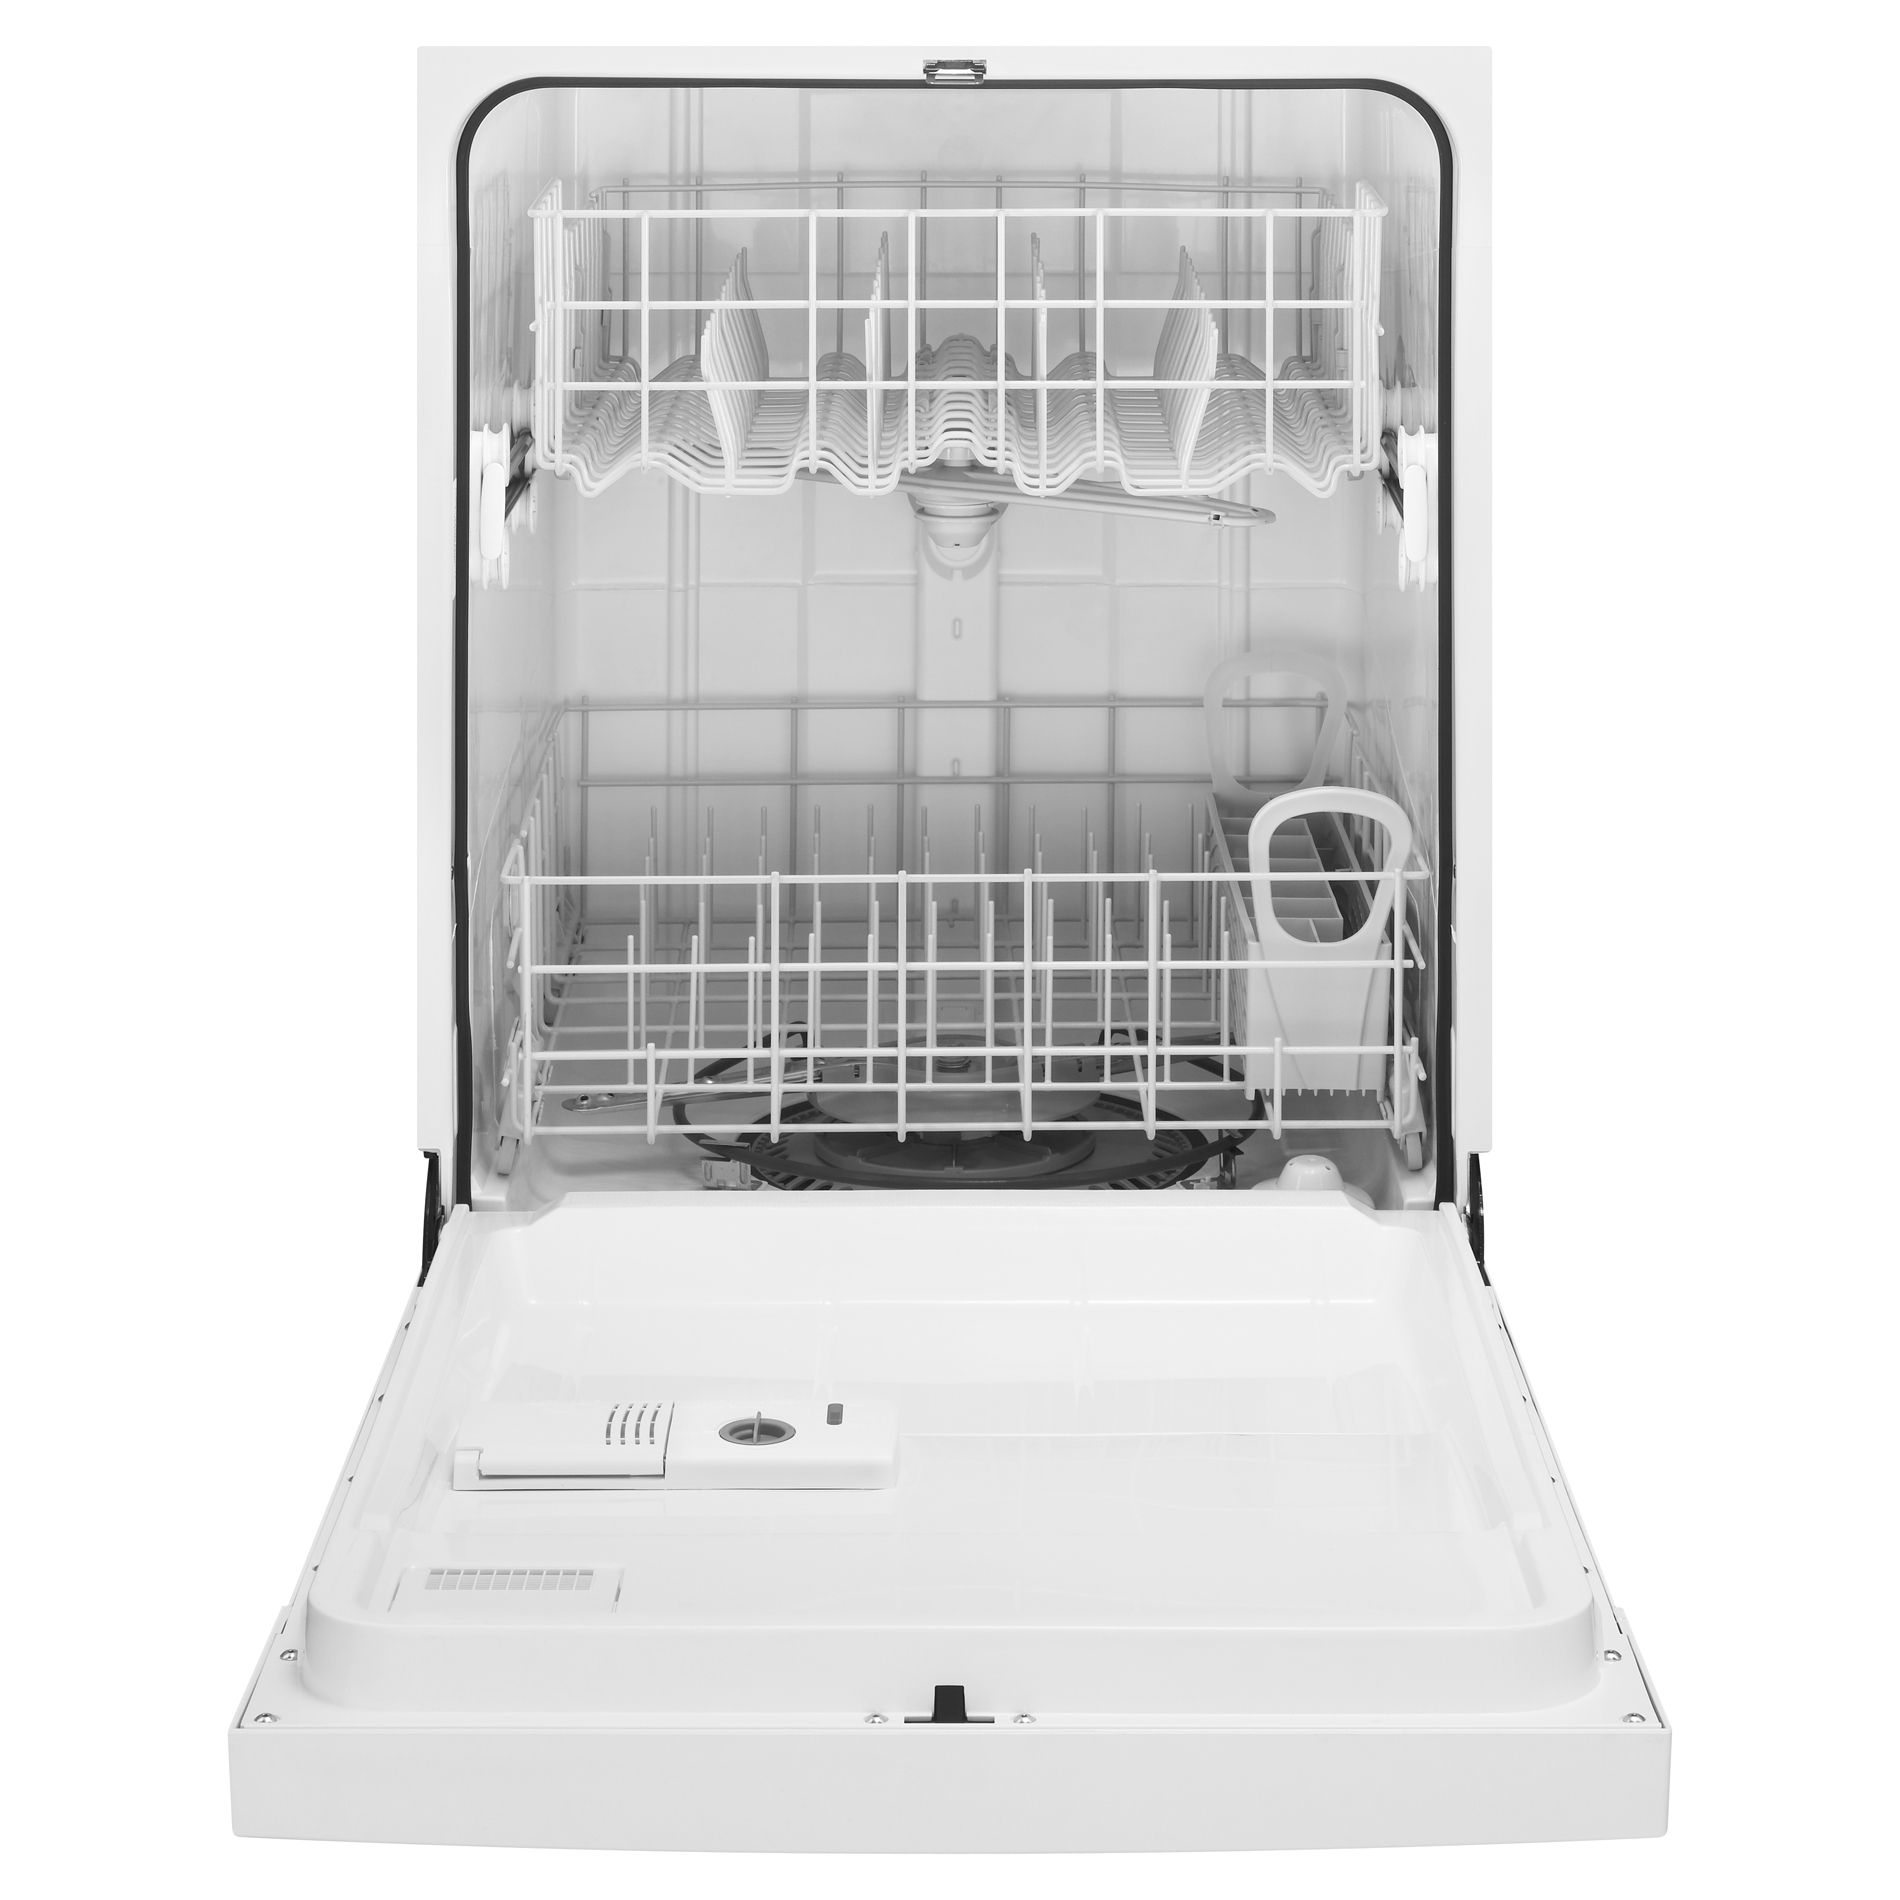 Whirlpool 24 in. Built-In Dishwasher - White